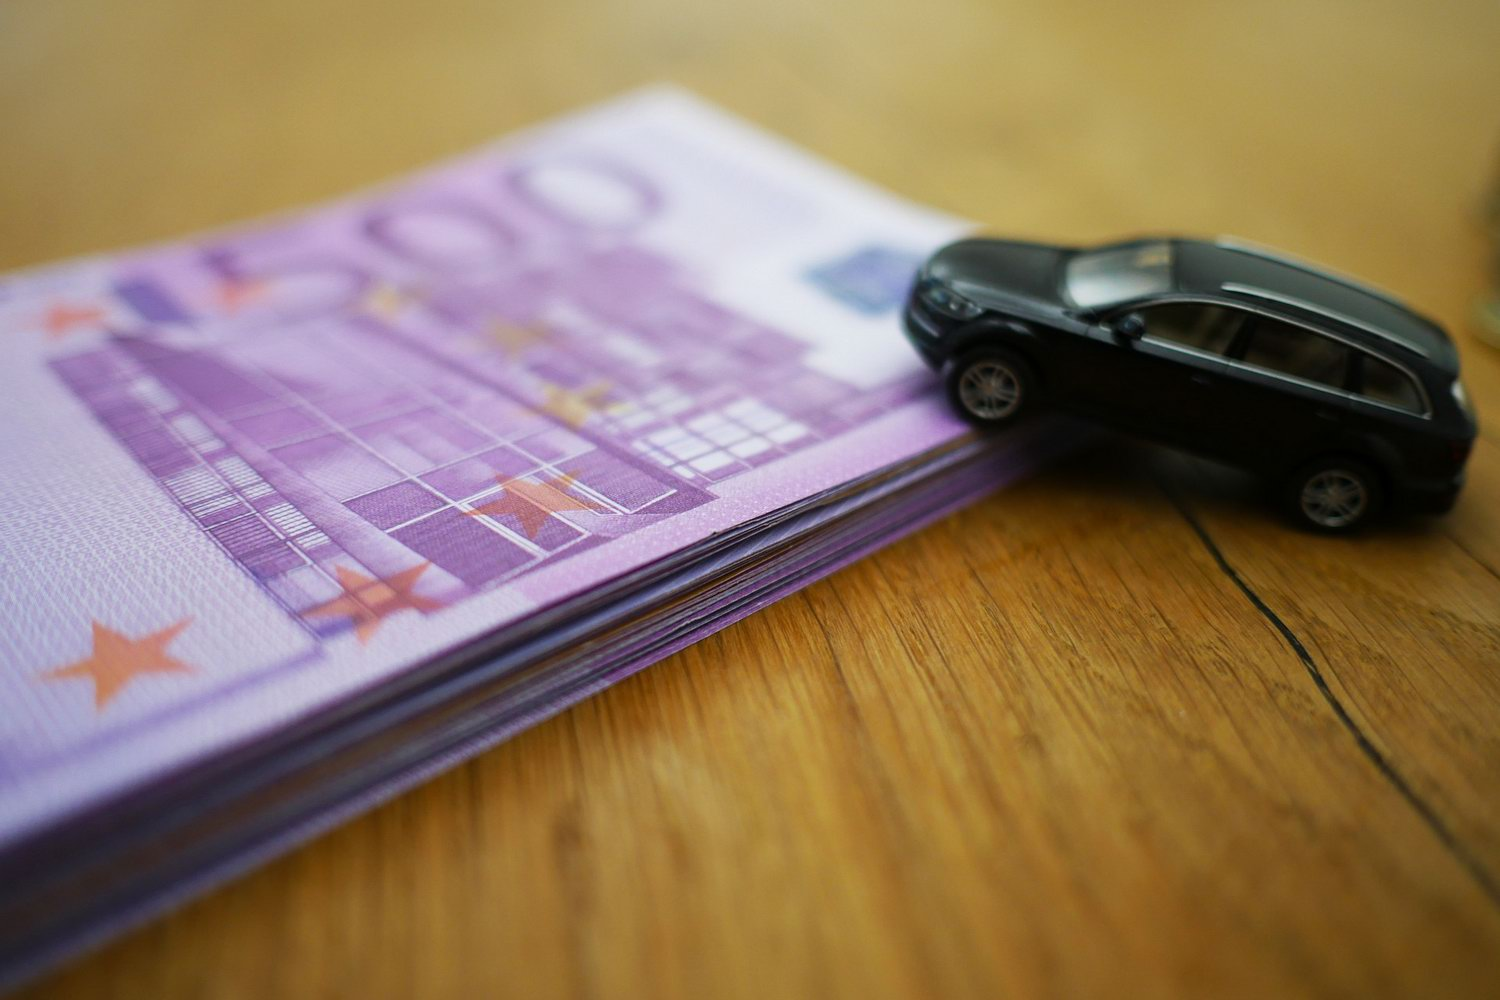 Car News   Levels of outstanding car finance have fallen   CompleteCar.ie